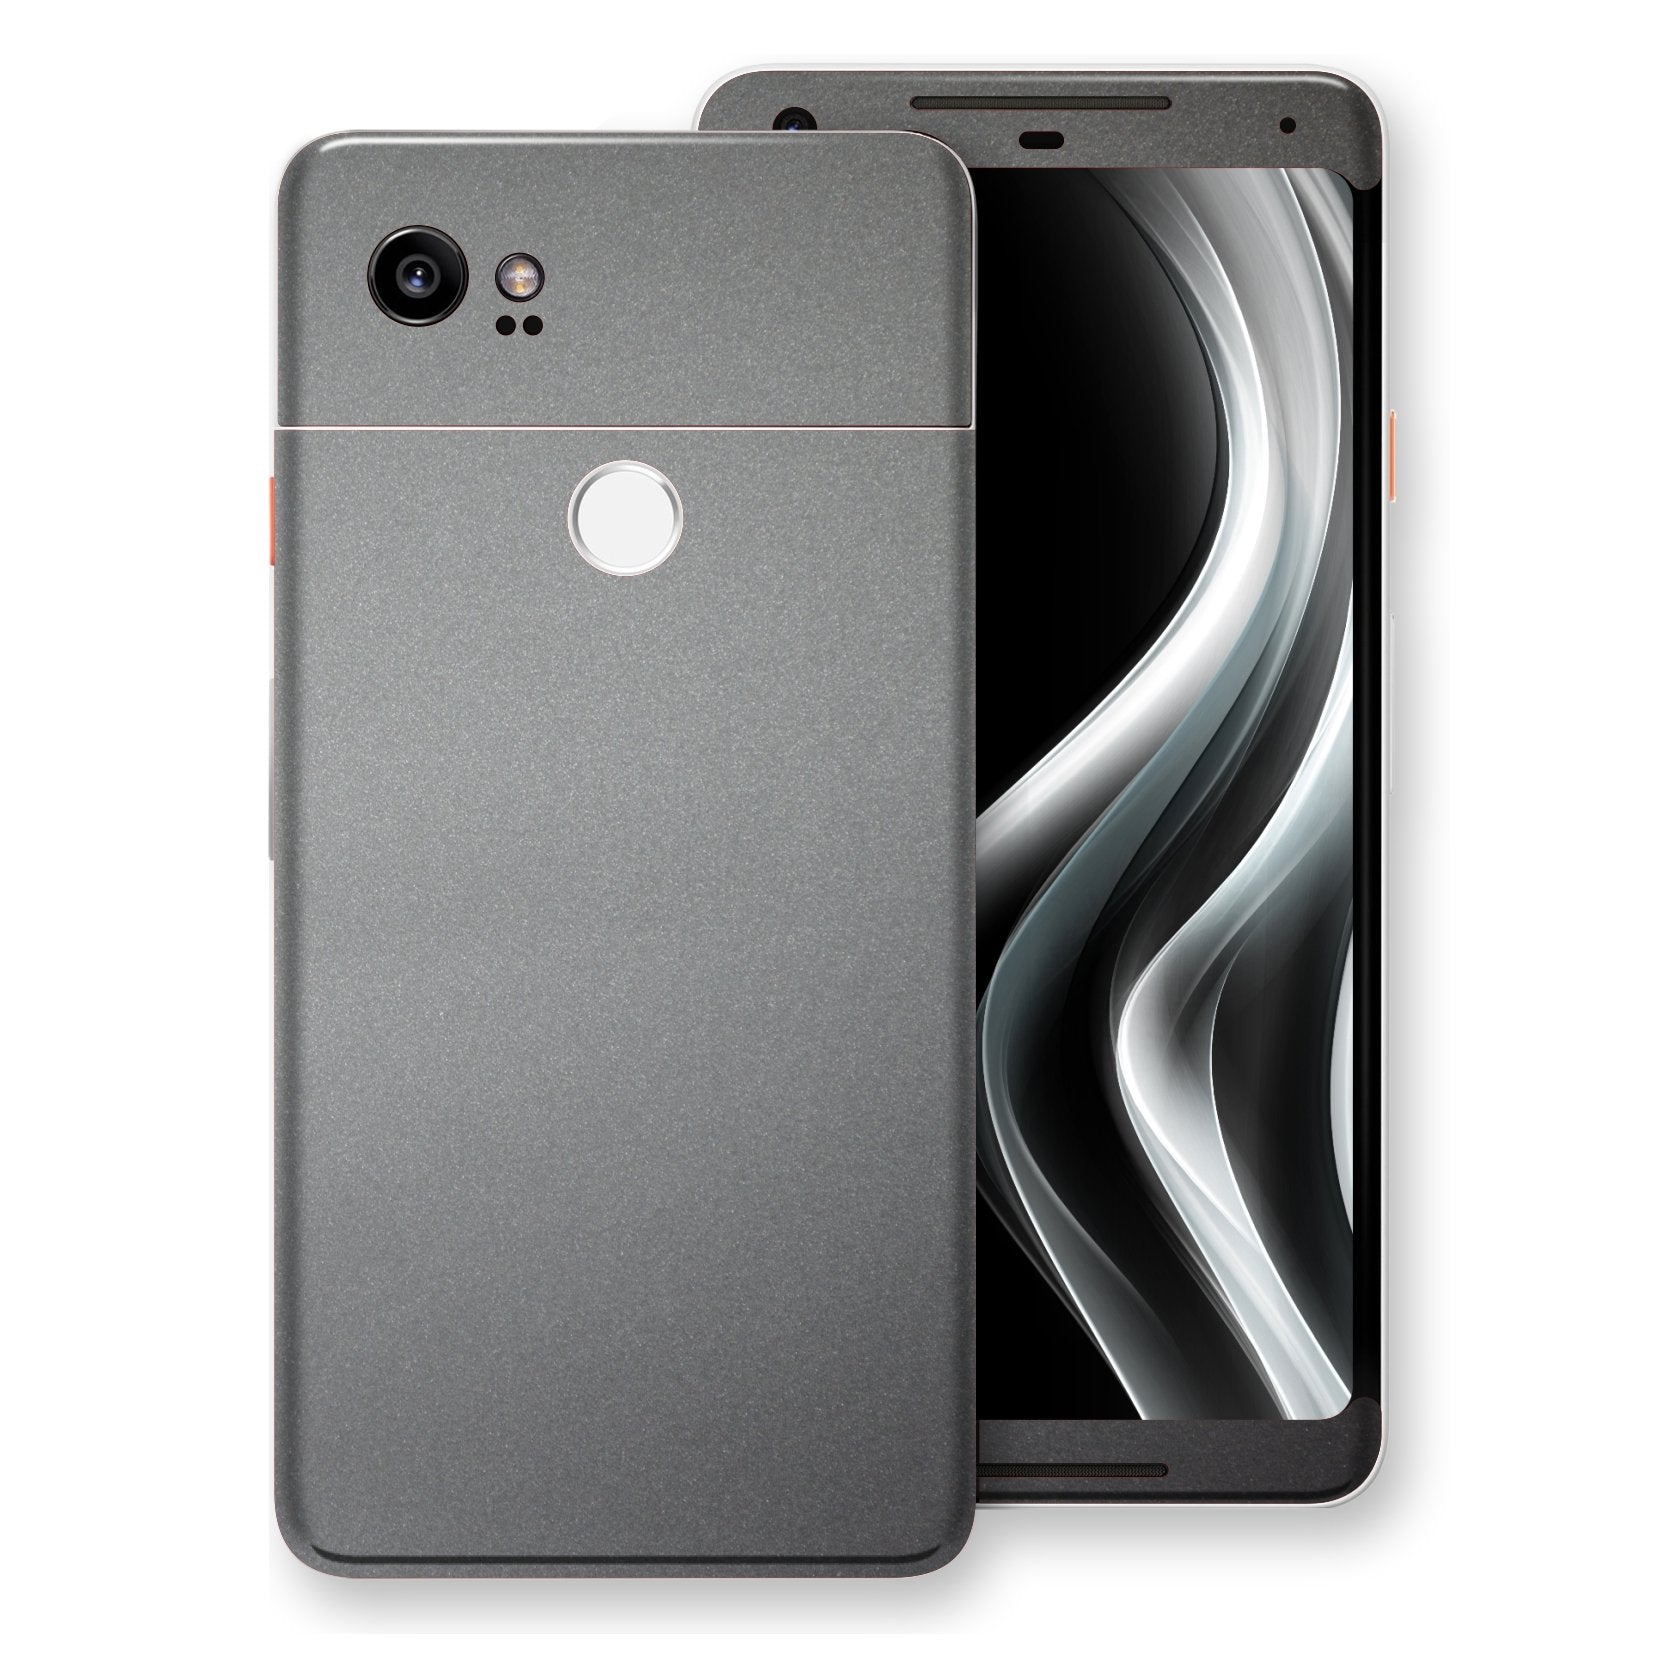 Google Pixel 2 XL Space Grey Matt Metallic Skin, Decal, Wrap, Protector, Cover by EasySkinz | EasySkinz.com